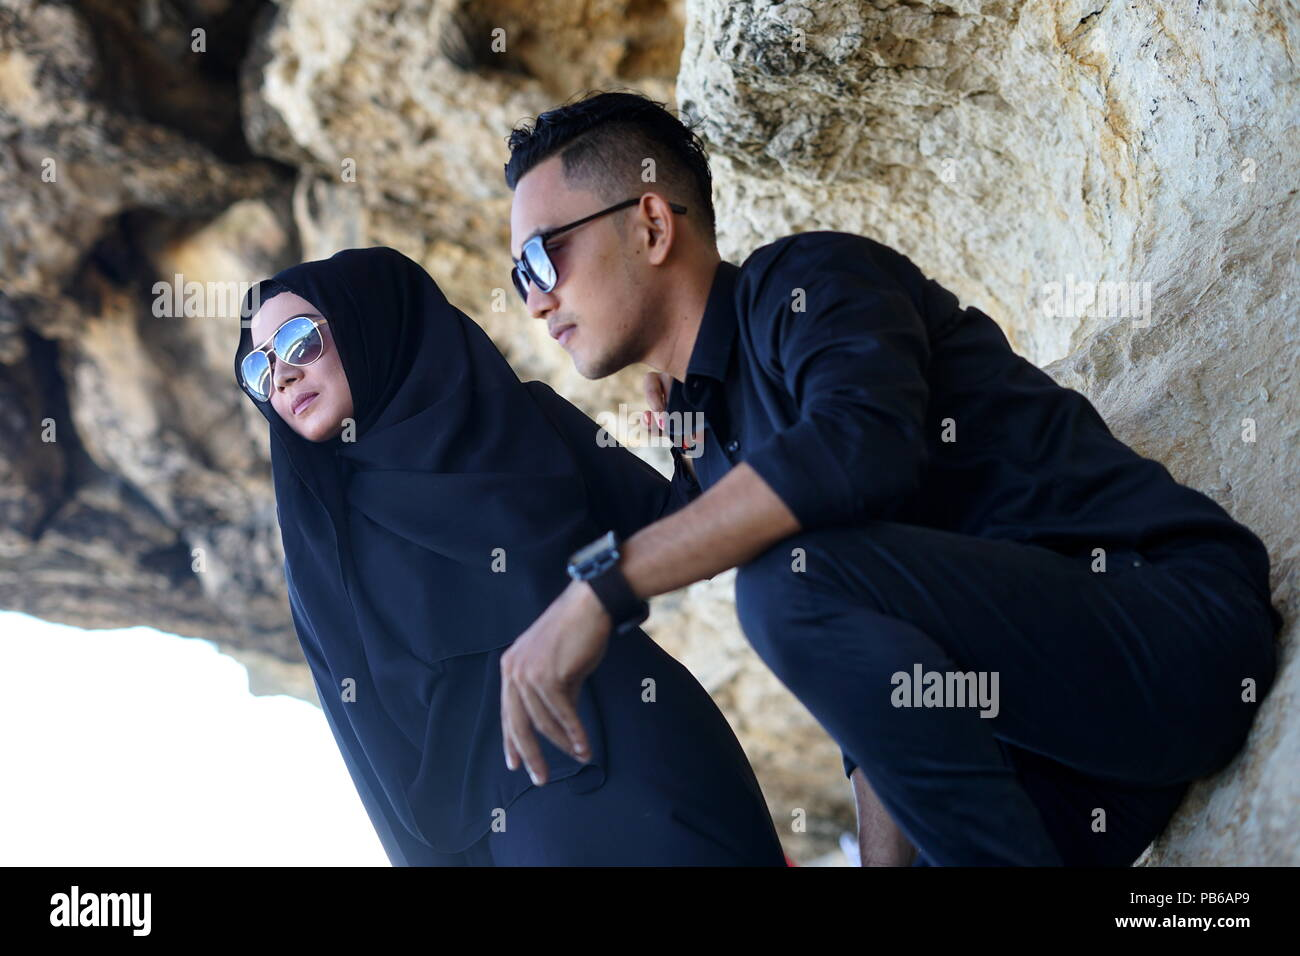 Muslim couple in the mountains rock with black dress stock image